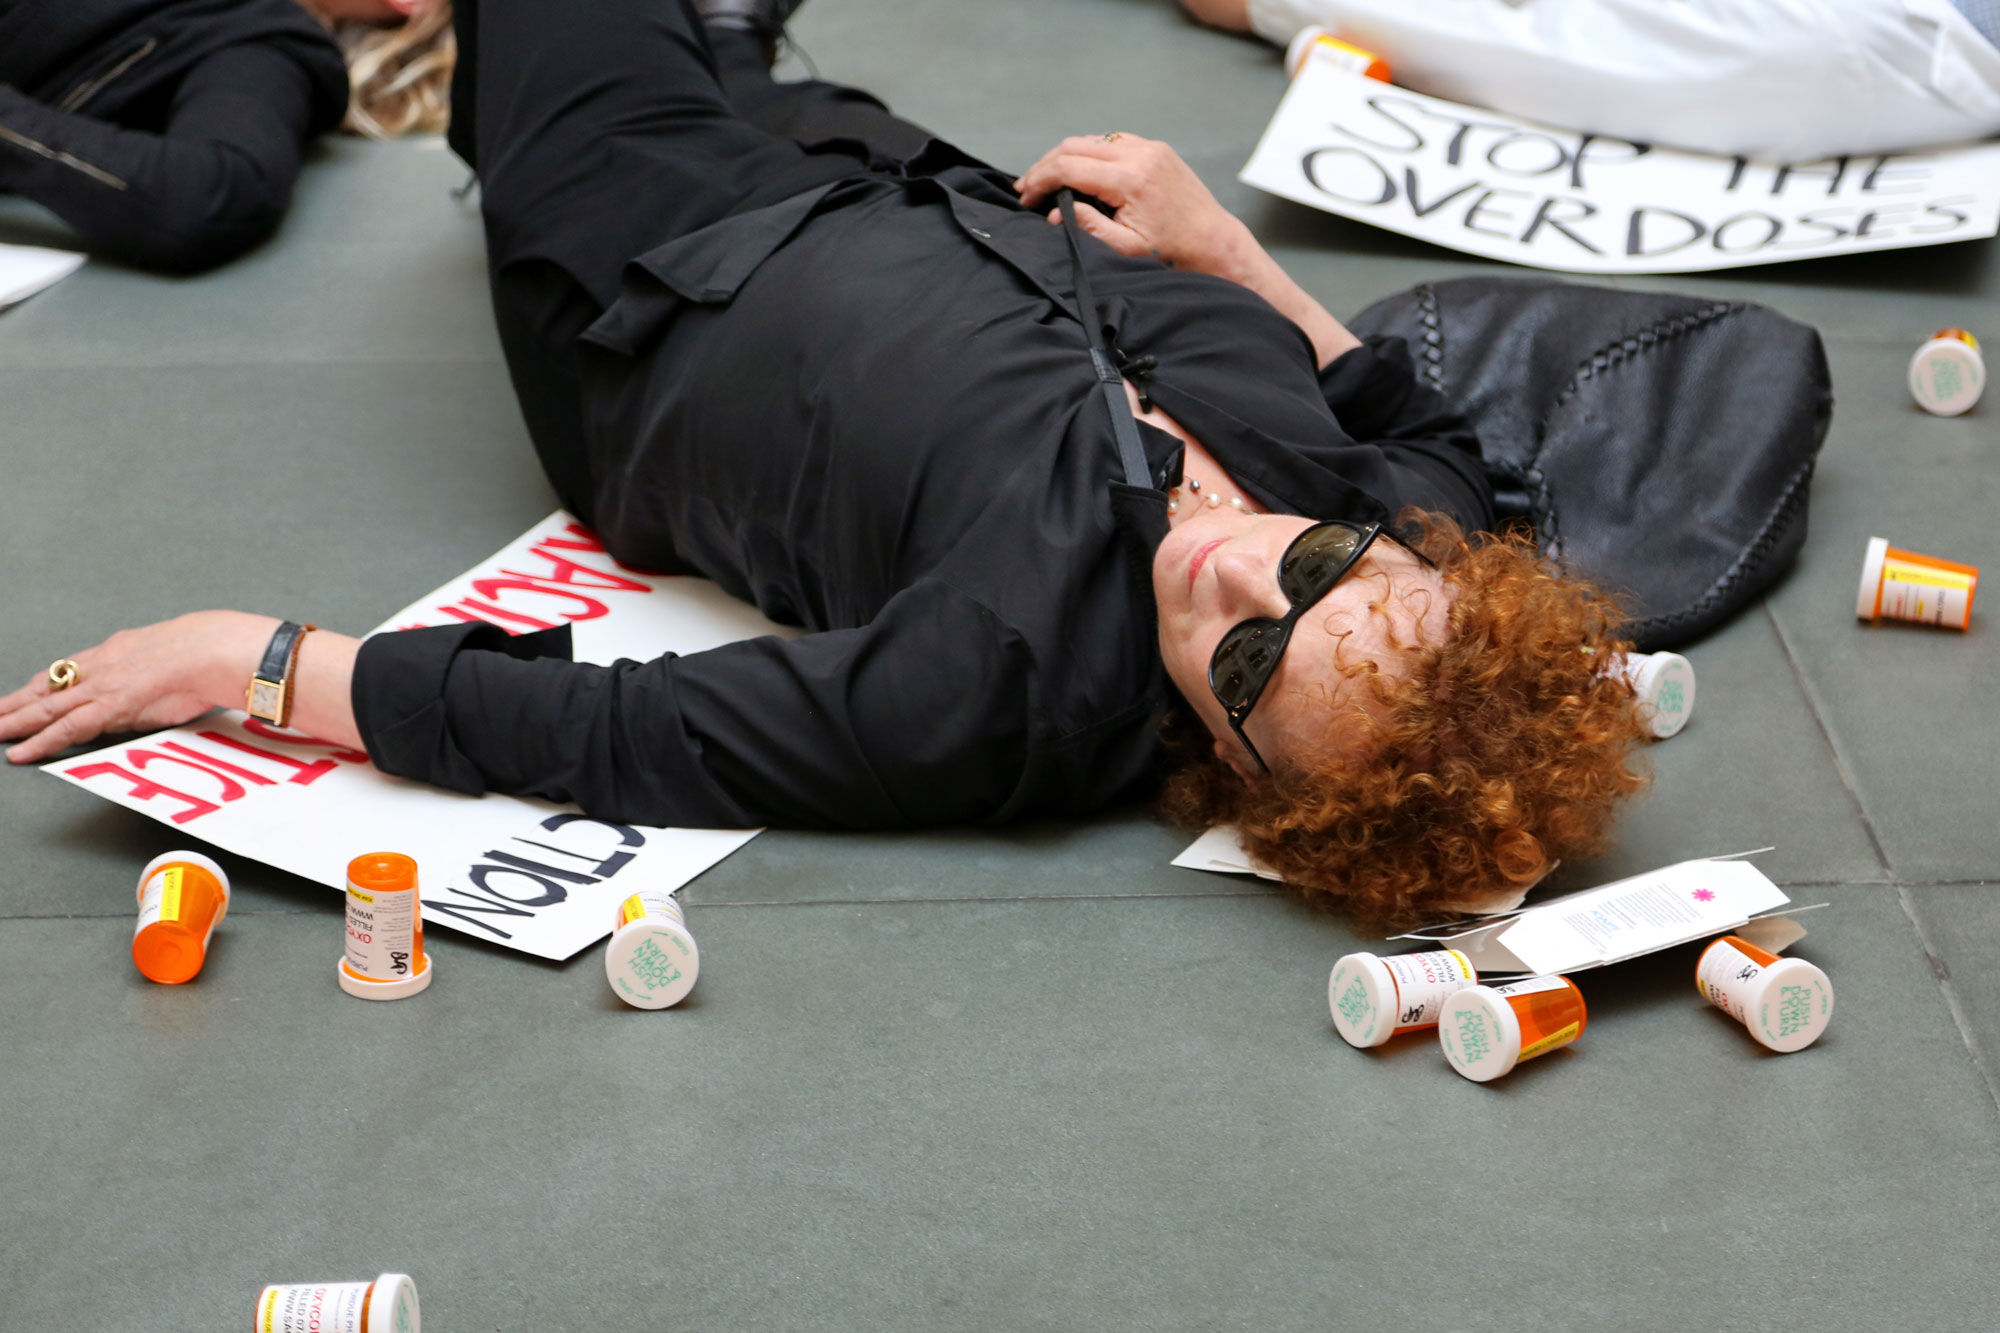 Photo of Nan Goldin during a protest at the Harvard Art Museums. Photo by TW Collins. Courtesy of P.A.I.N. Sackler.